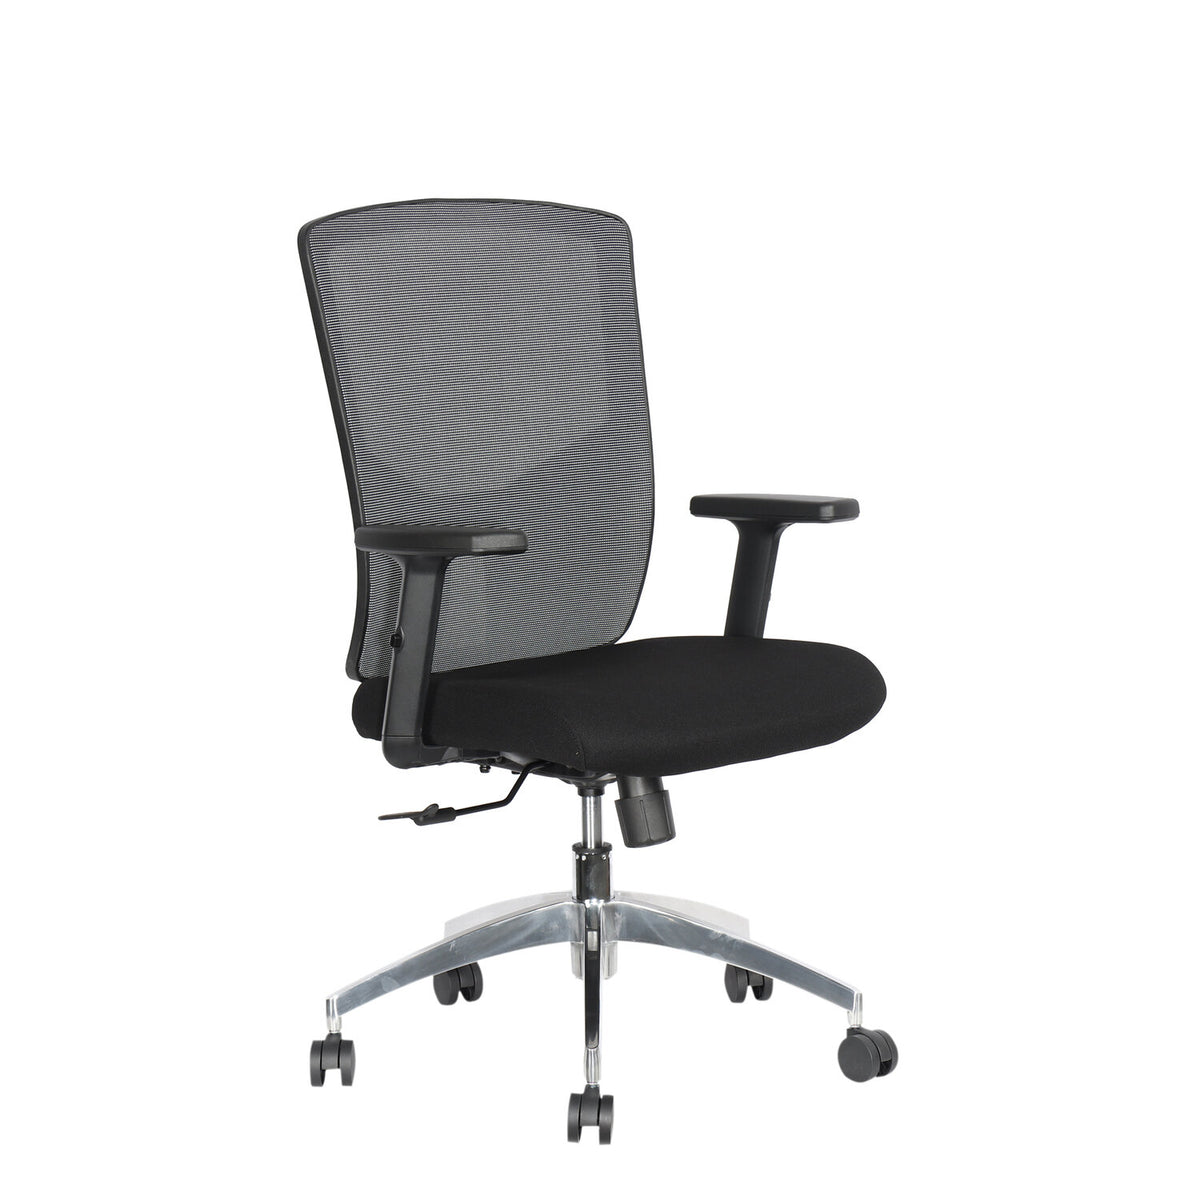 CHR5- TGEG / Series 8 Task Seating